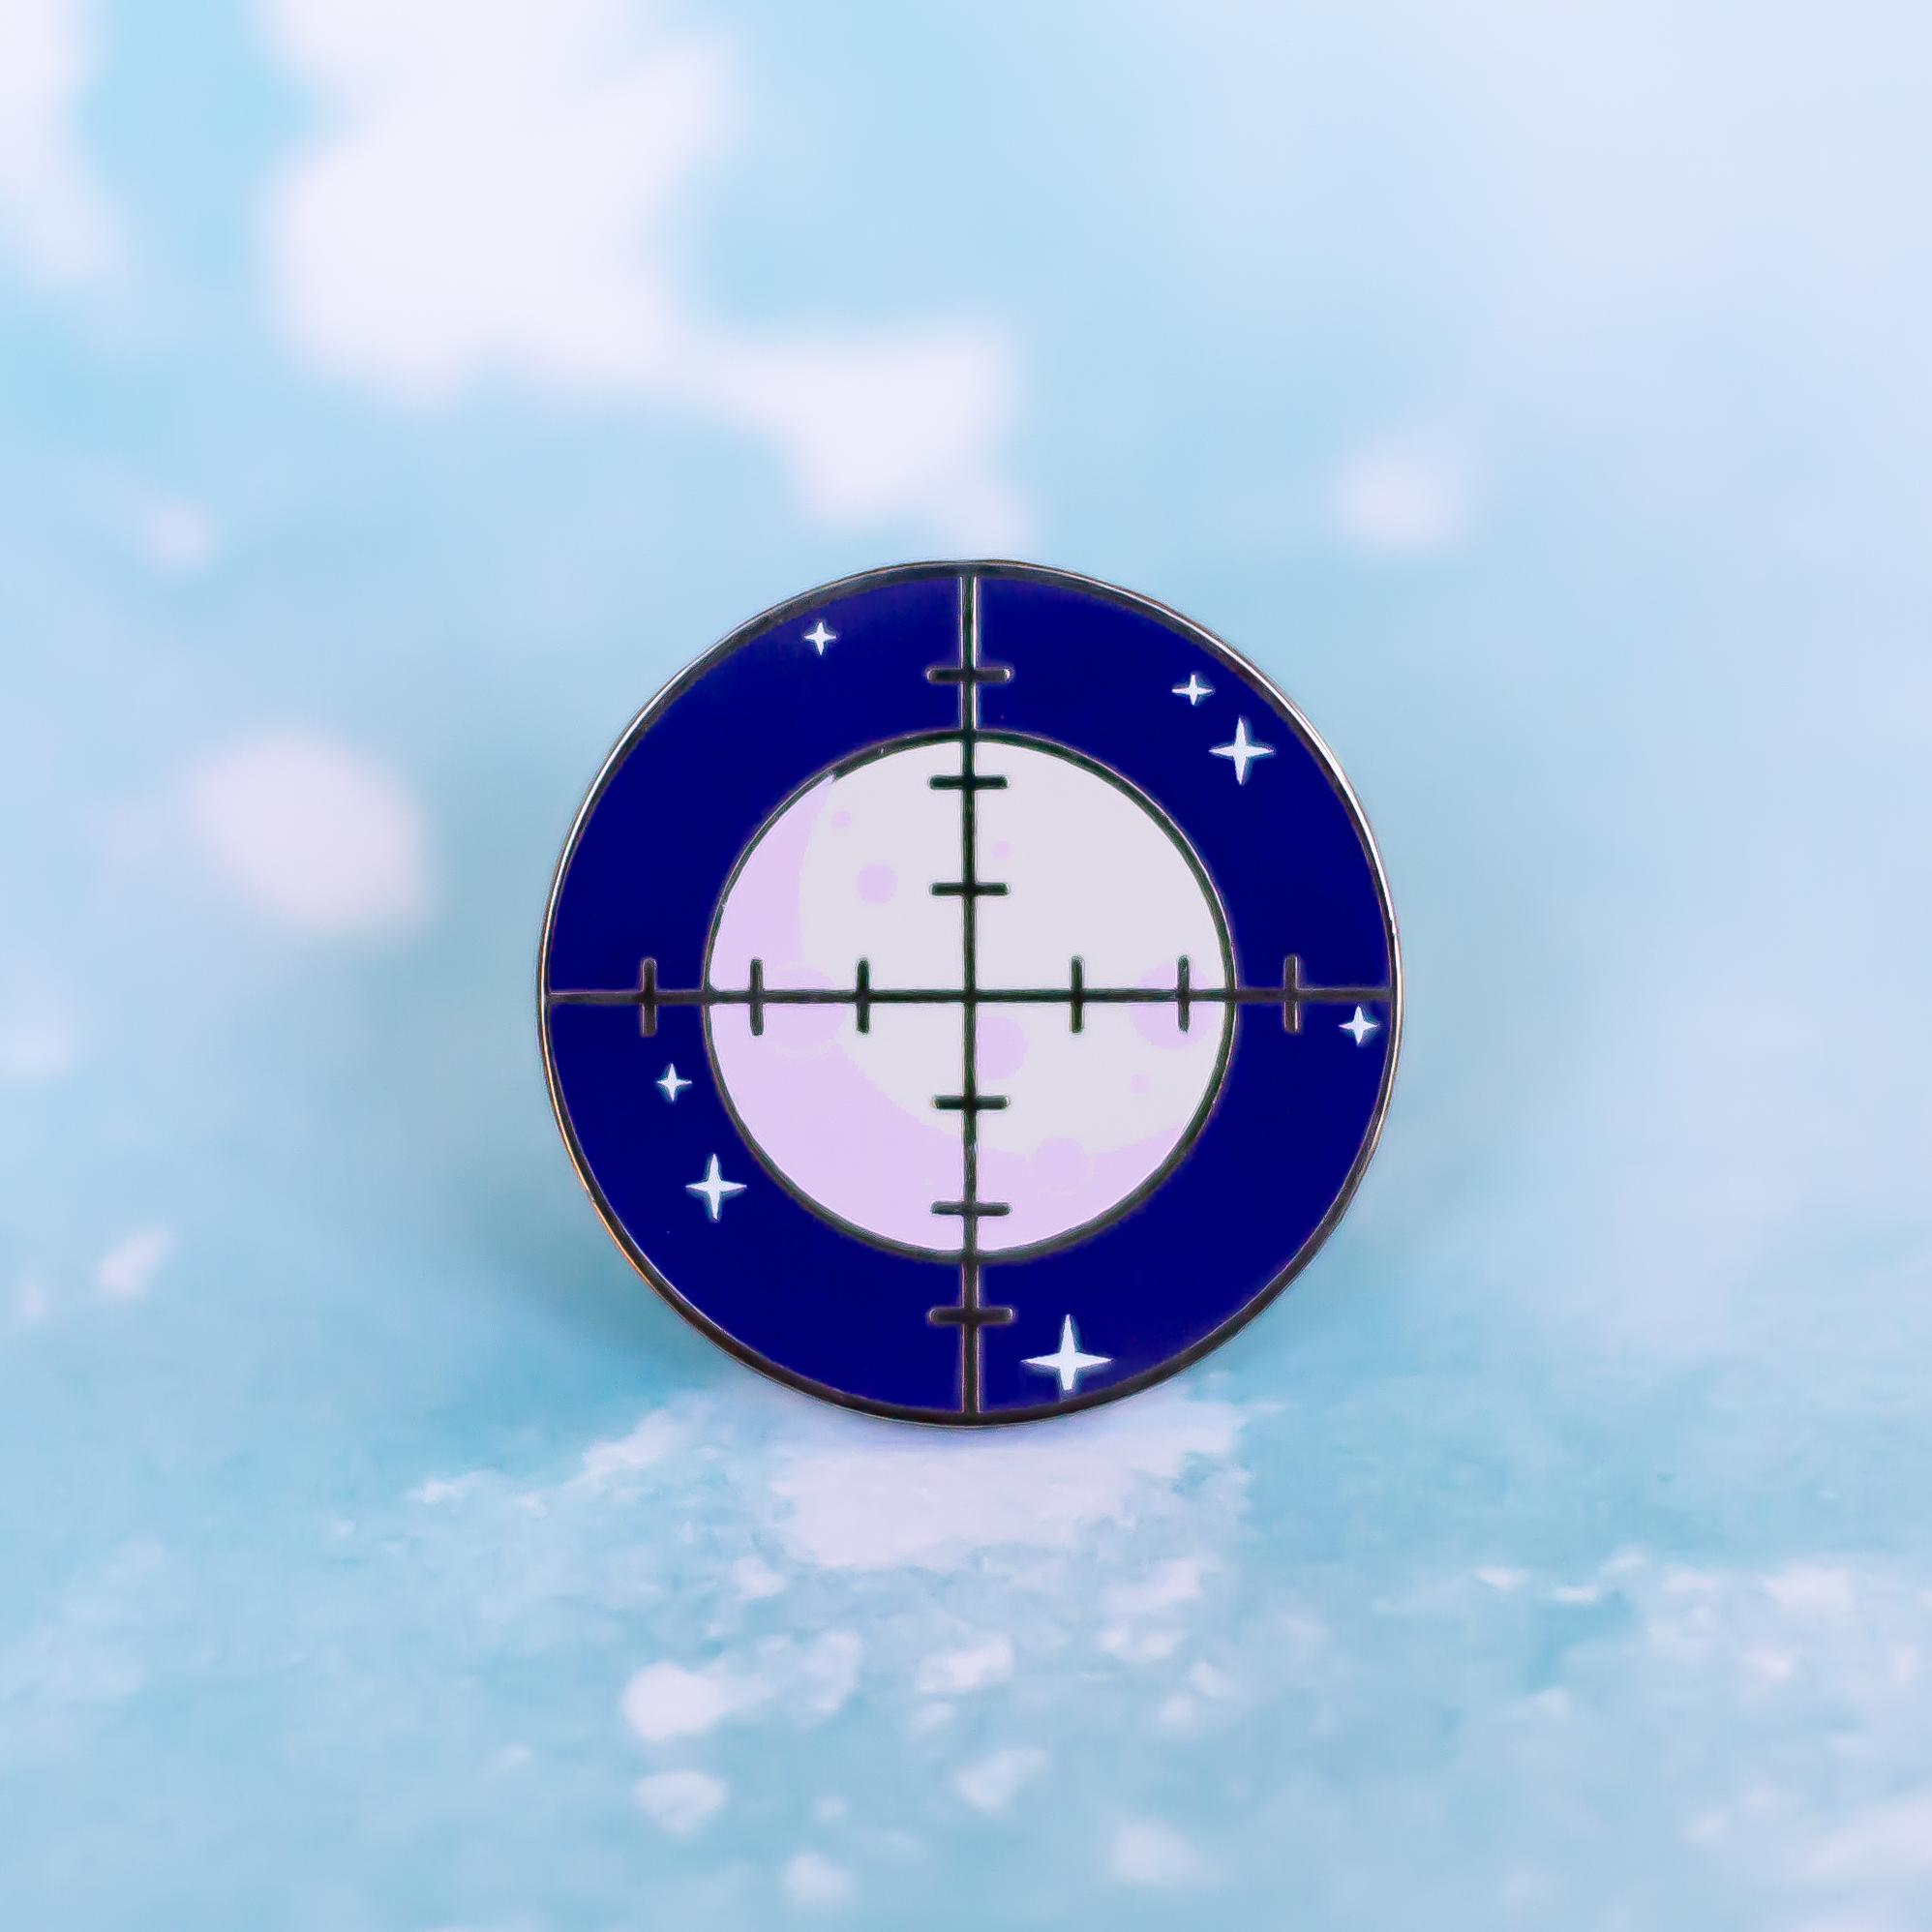 "[Image] ""Aim for the moon, for even if you miss you'll land amongst the stars"" I created this enamel pin for myself, to remember to dream big and reach for what you want. It's my least popular pin, but it's still the one closest to my heart. I hope it inspires you as well!"